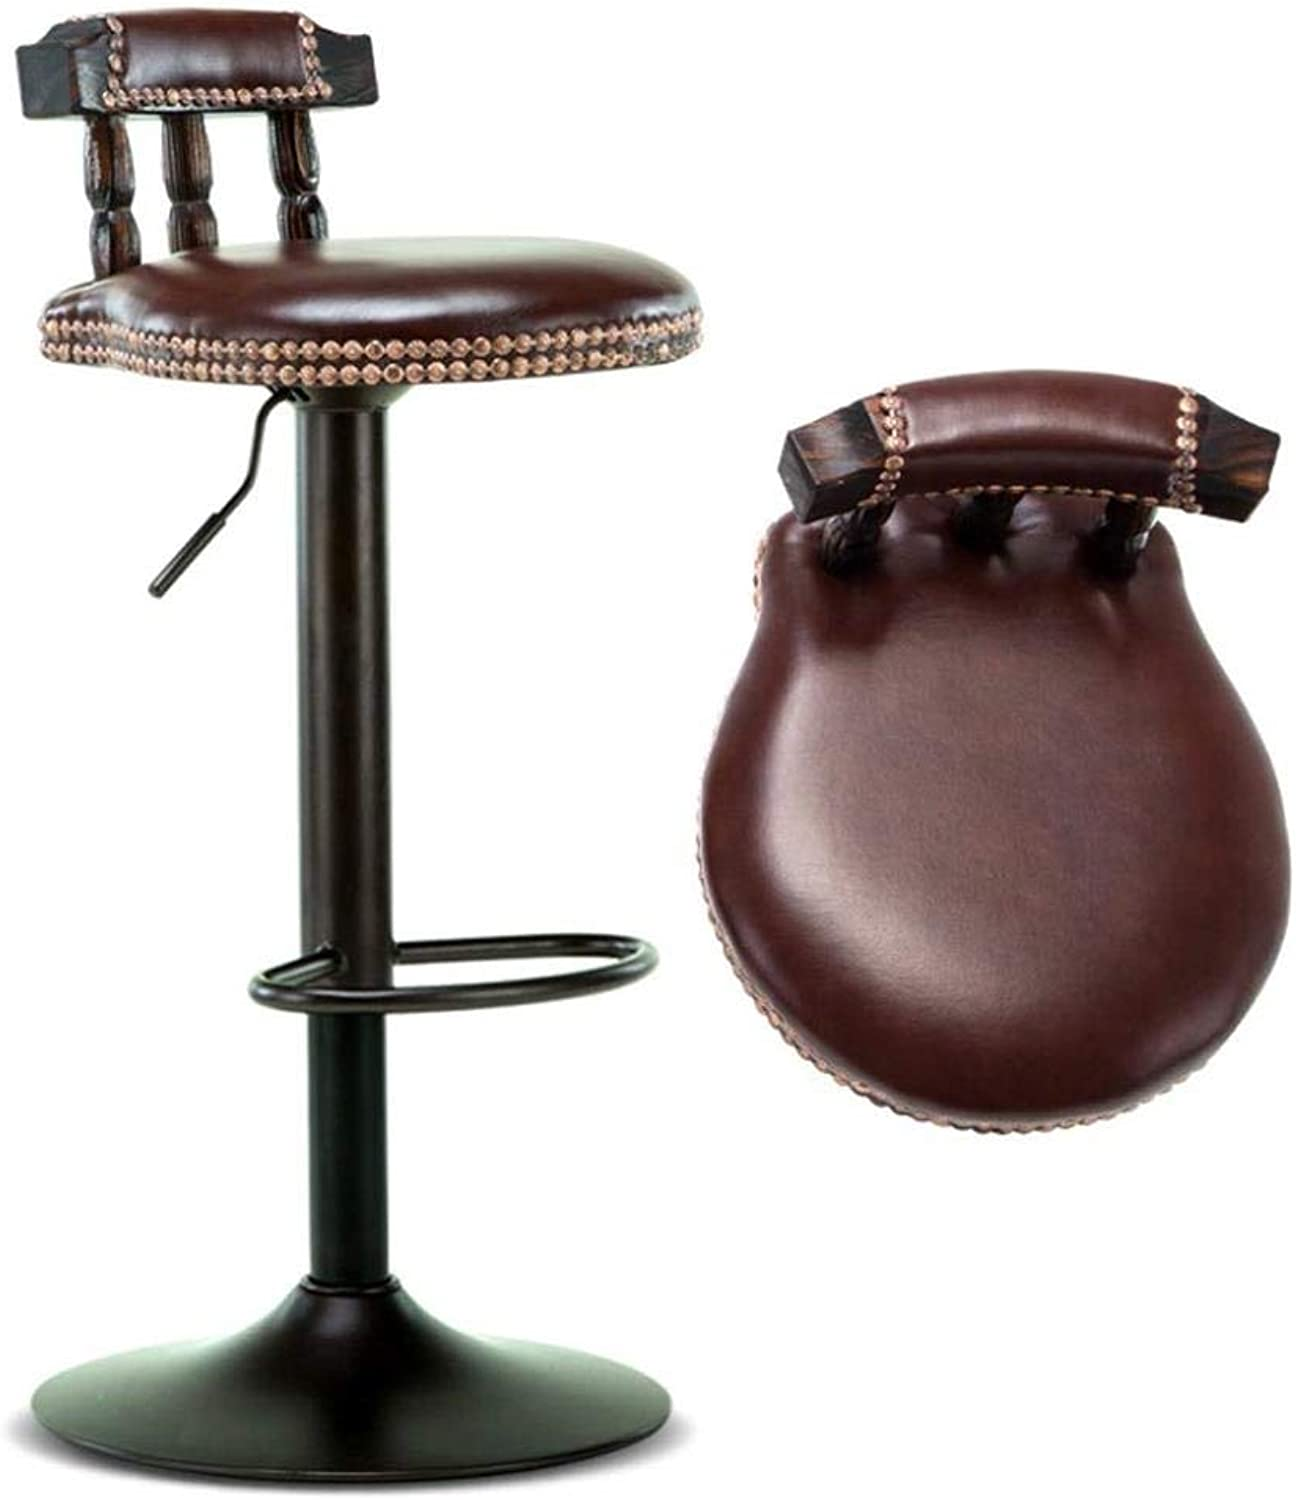 FENGFAN Bar Stool, Swivel Chair Cafe Seat, Jewelry Counter Chair, Copper Nail Trim - Leather Cotton Wood, Comfortable Sitting, Metal Base (color   Brown)